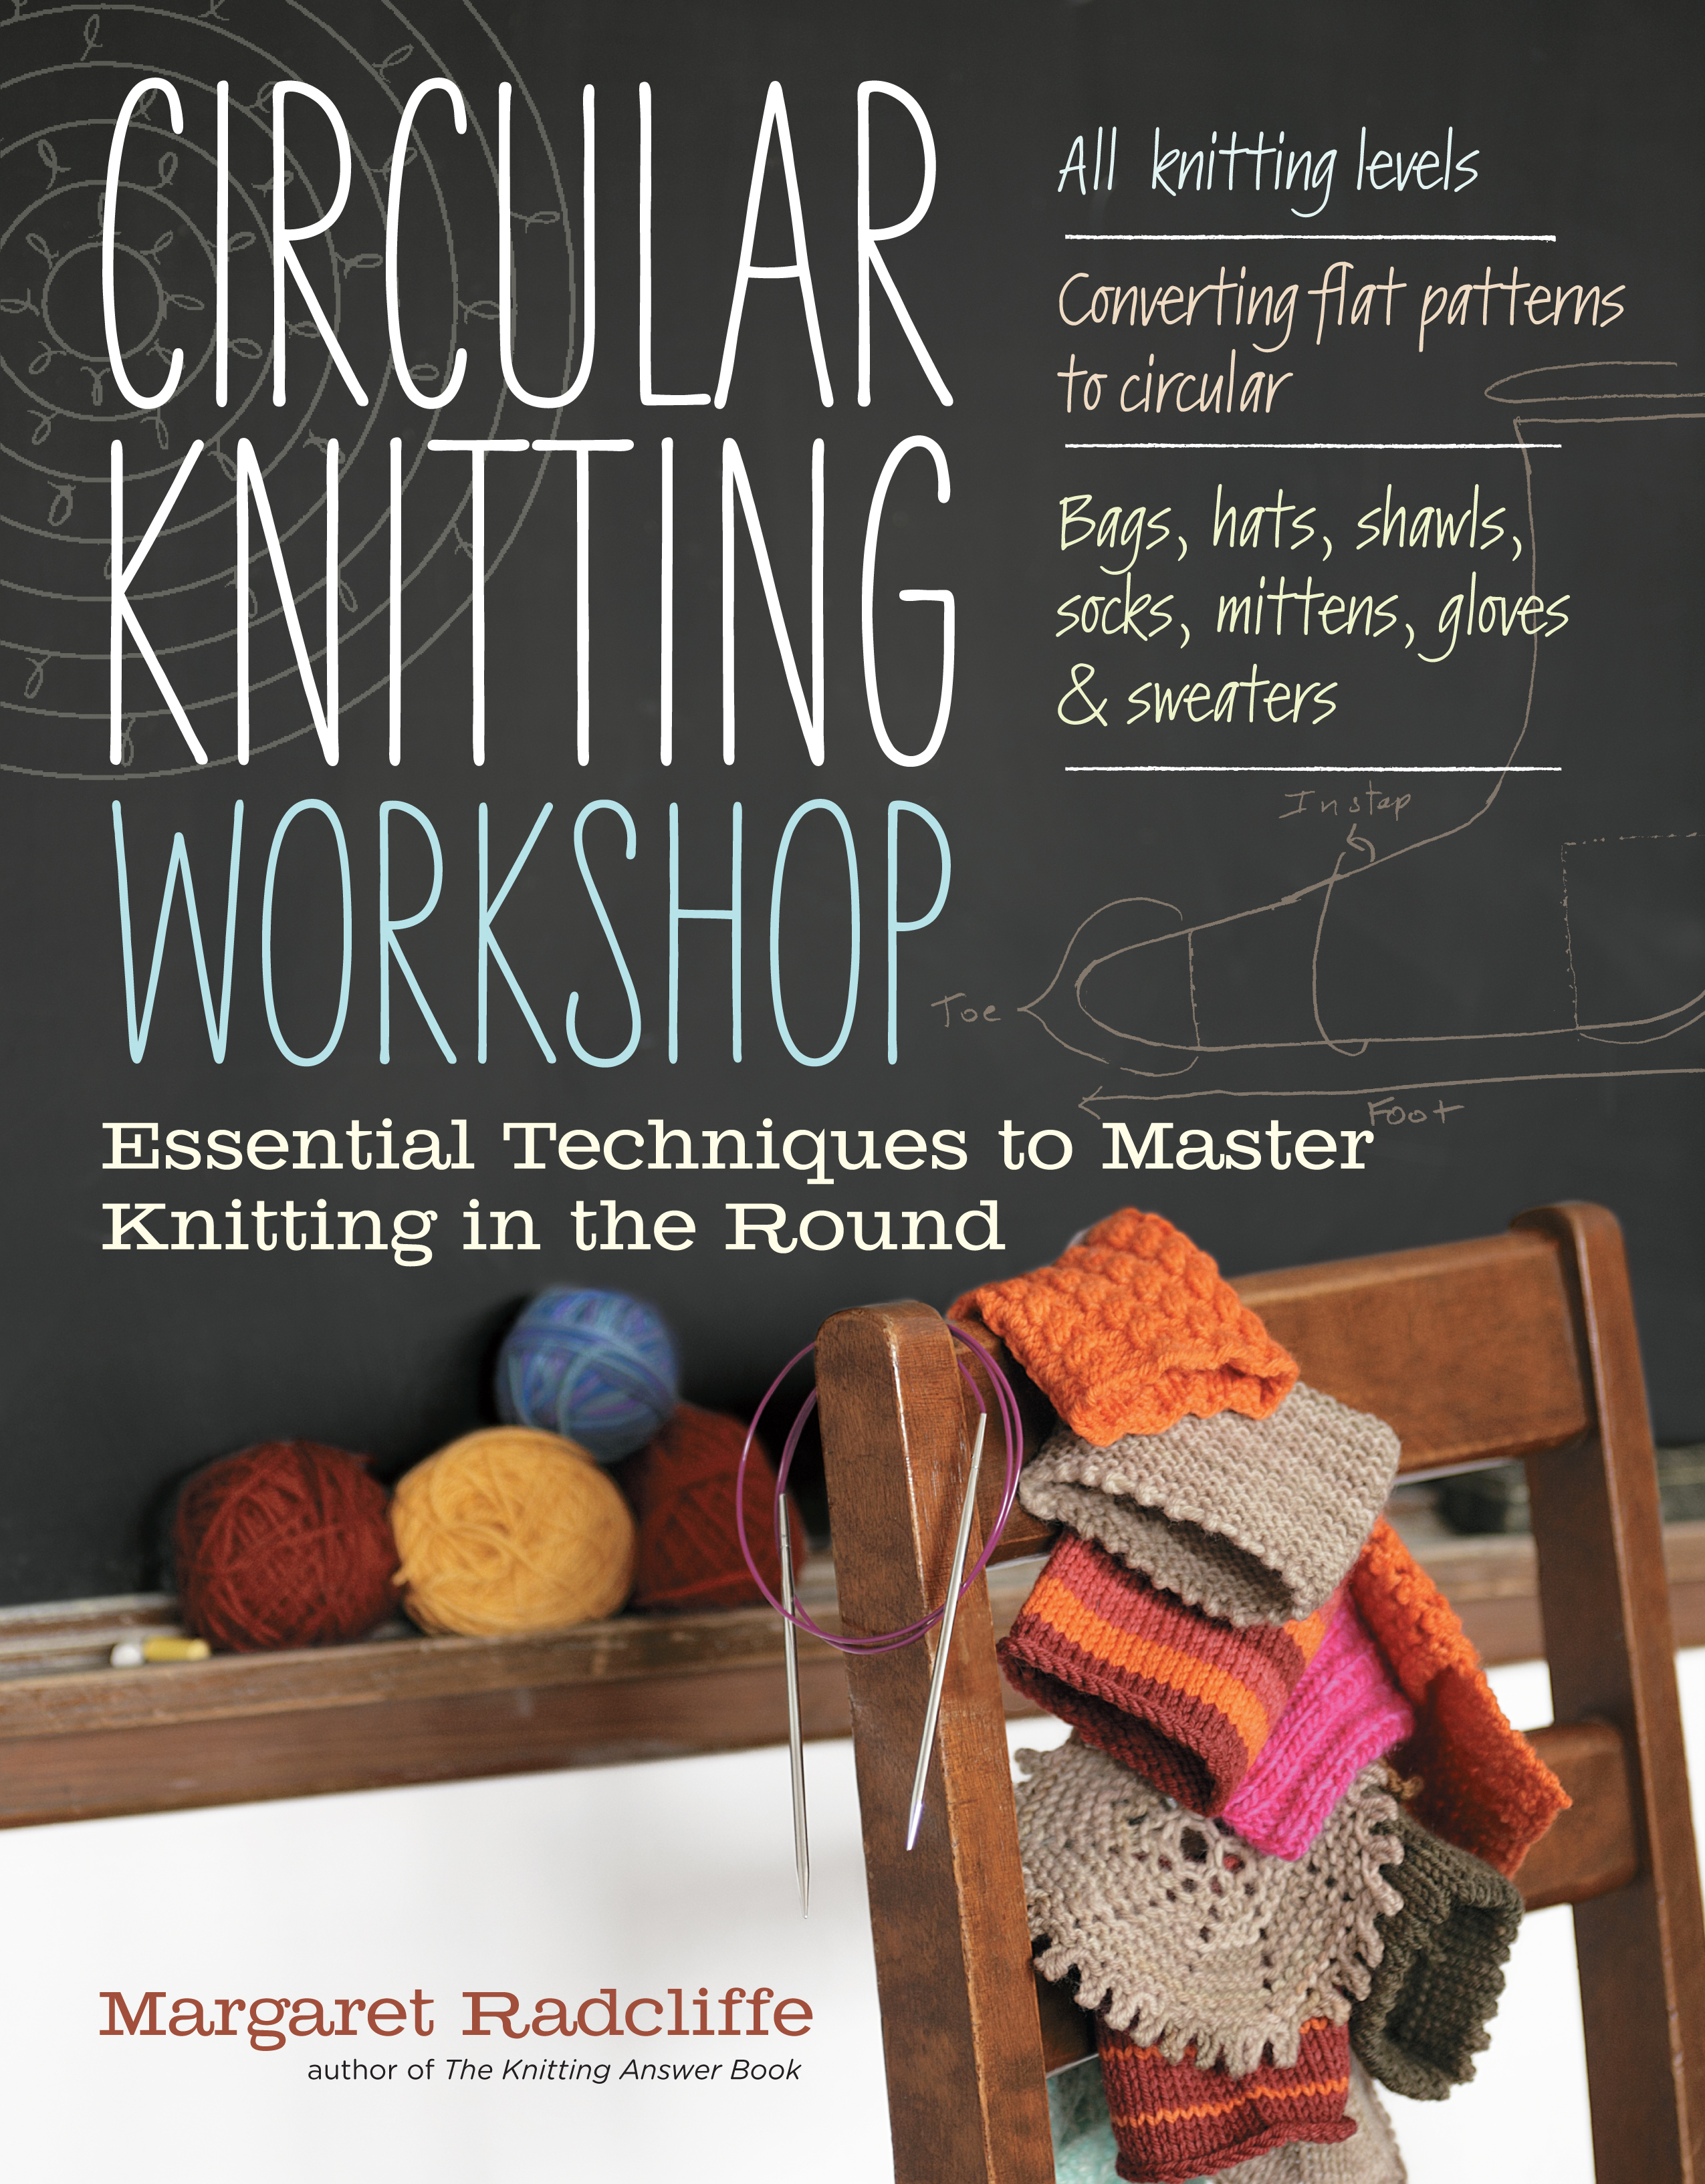 Circular Knitting Workshop Essential Techniques to Master Knitting in the Round - Margaret Radcliffe